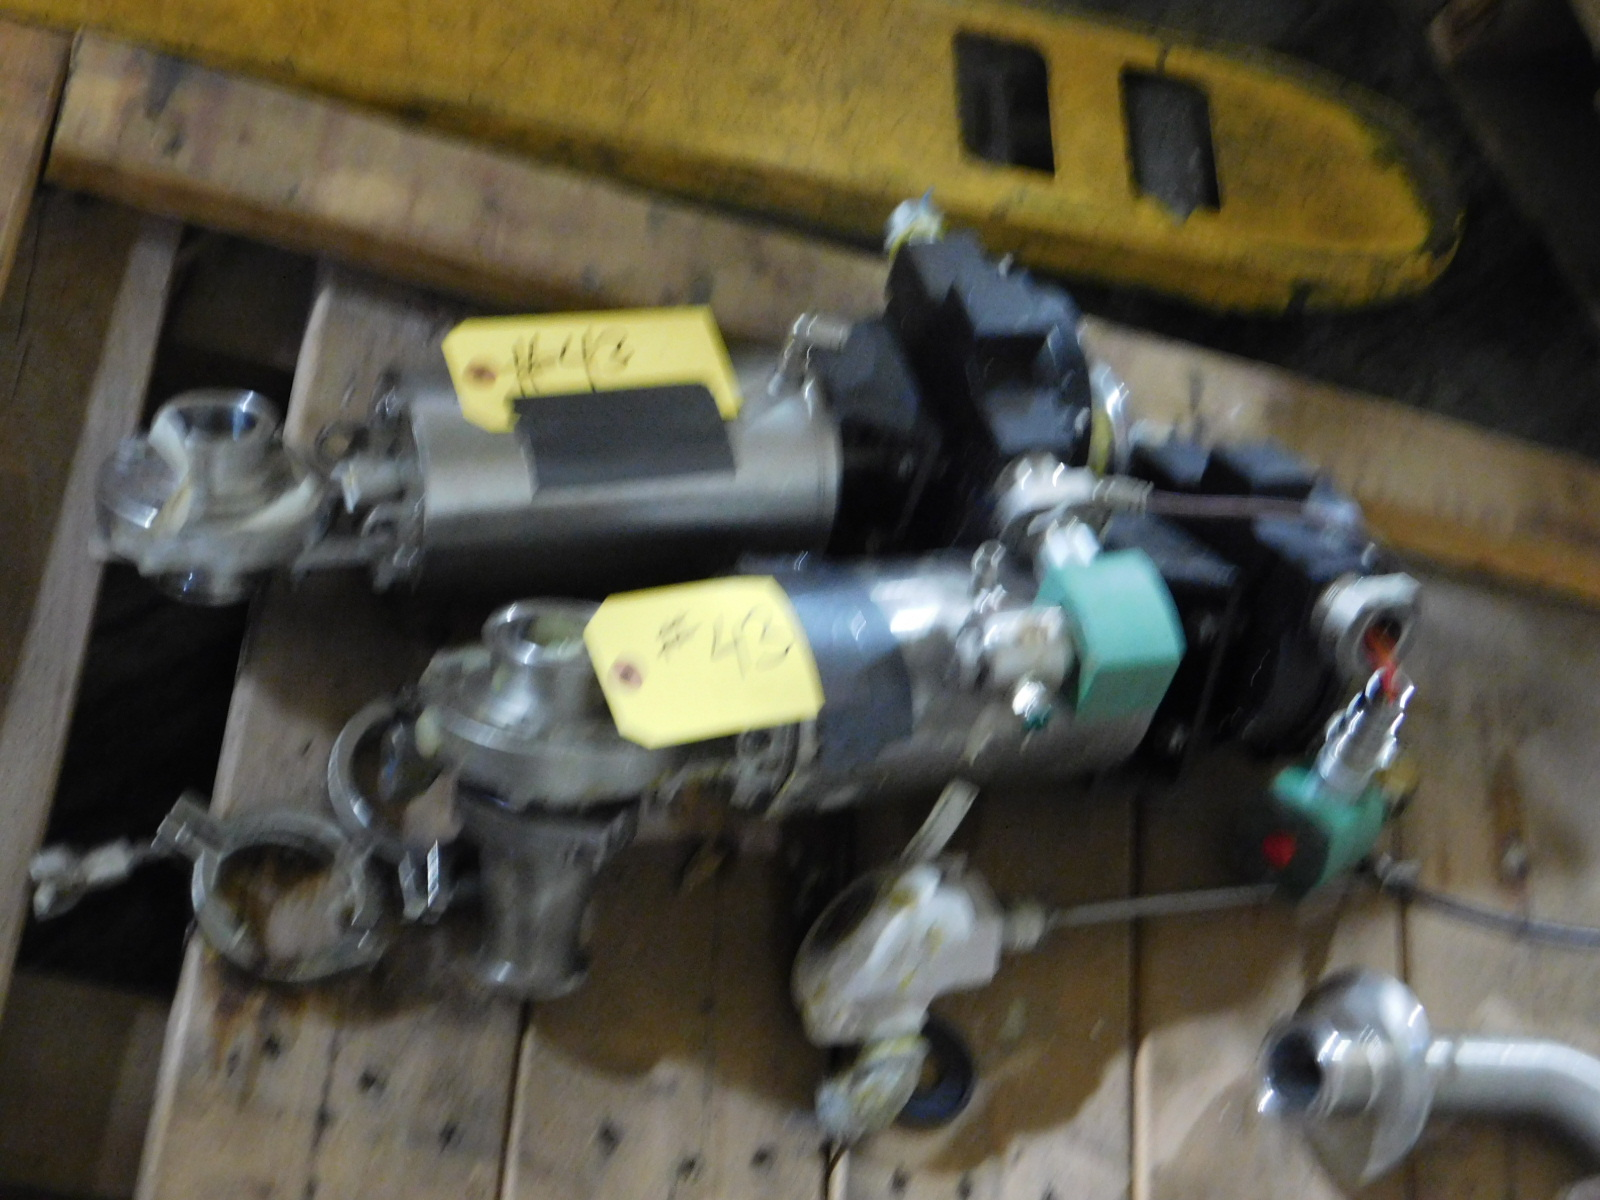 Lot 43 - ASCO QTY 2 Rotary Position Indicator, VR3C2YAA2NGA :equipment located at Clark Logistic Services |